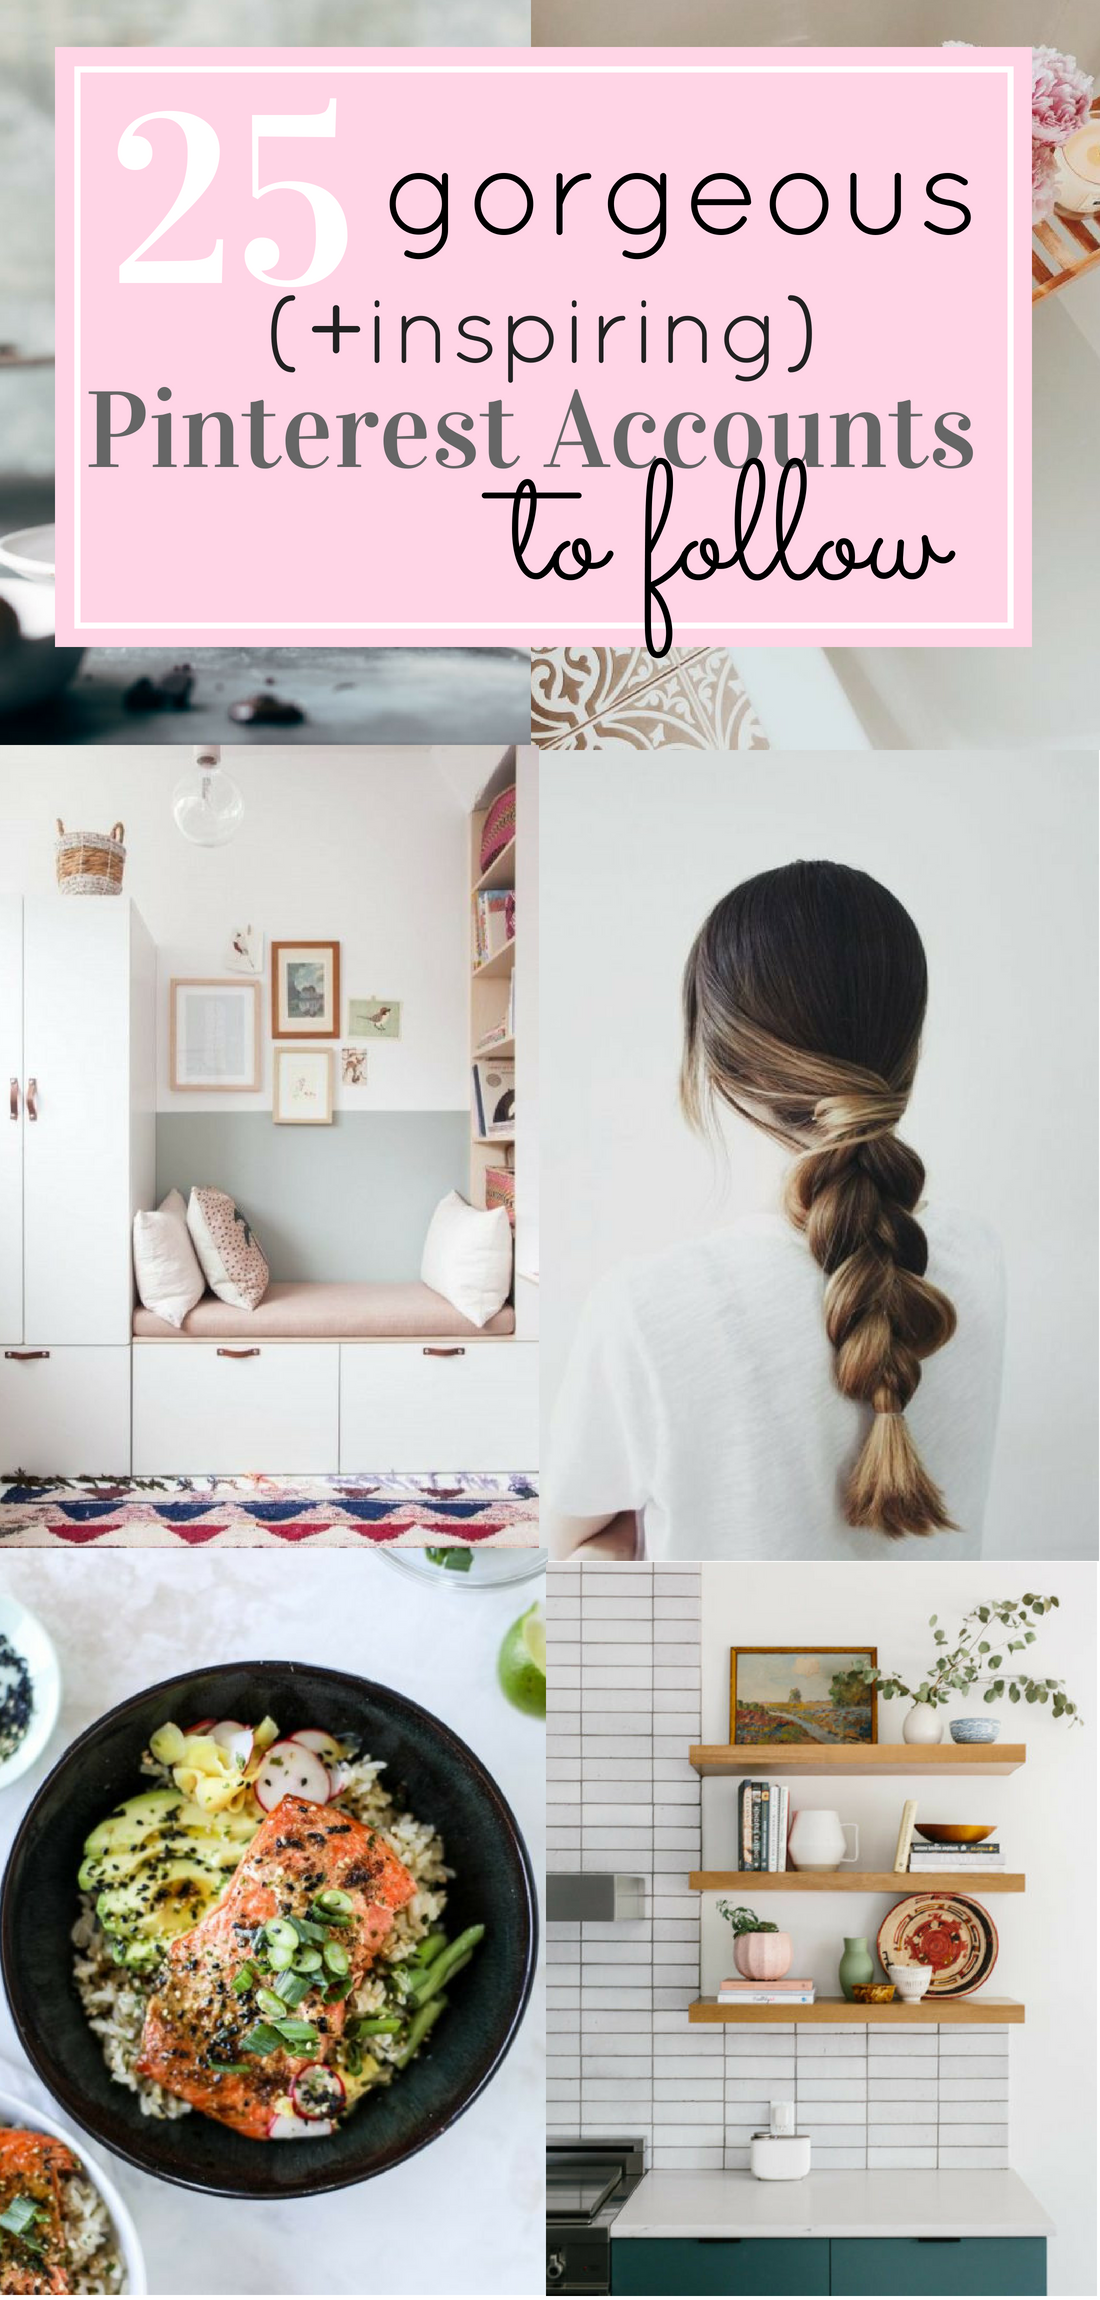 Ready to get inspired? I'm sharing 25 gorgeous (and totally inspiring) Pinterest accounts to follow; a.k.a., my favorites, and those I keep coming back to again and again for inspiration, recipes, fashion, home décor, crafts, awesome quotes, weddings and events, blogging tips,and more. #inspiration | glitterinc.com | @glitterinc